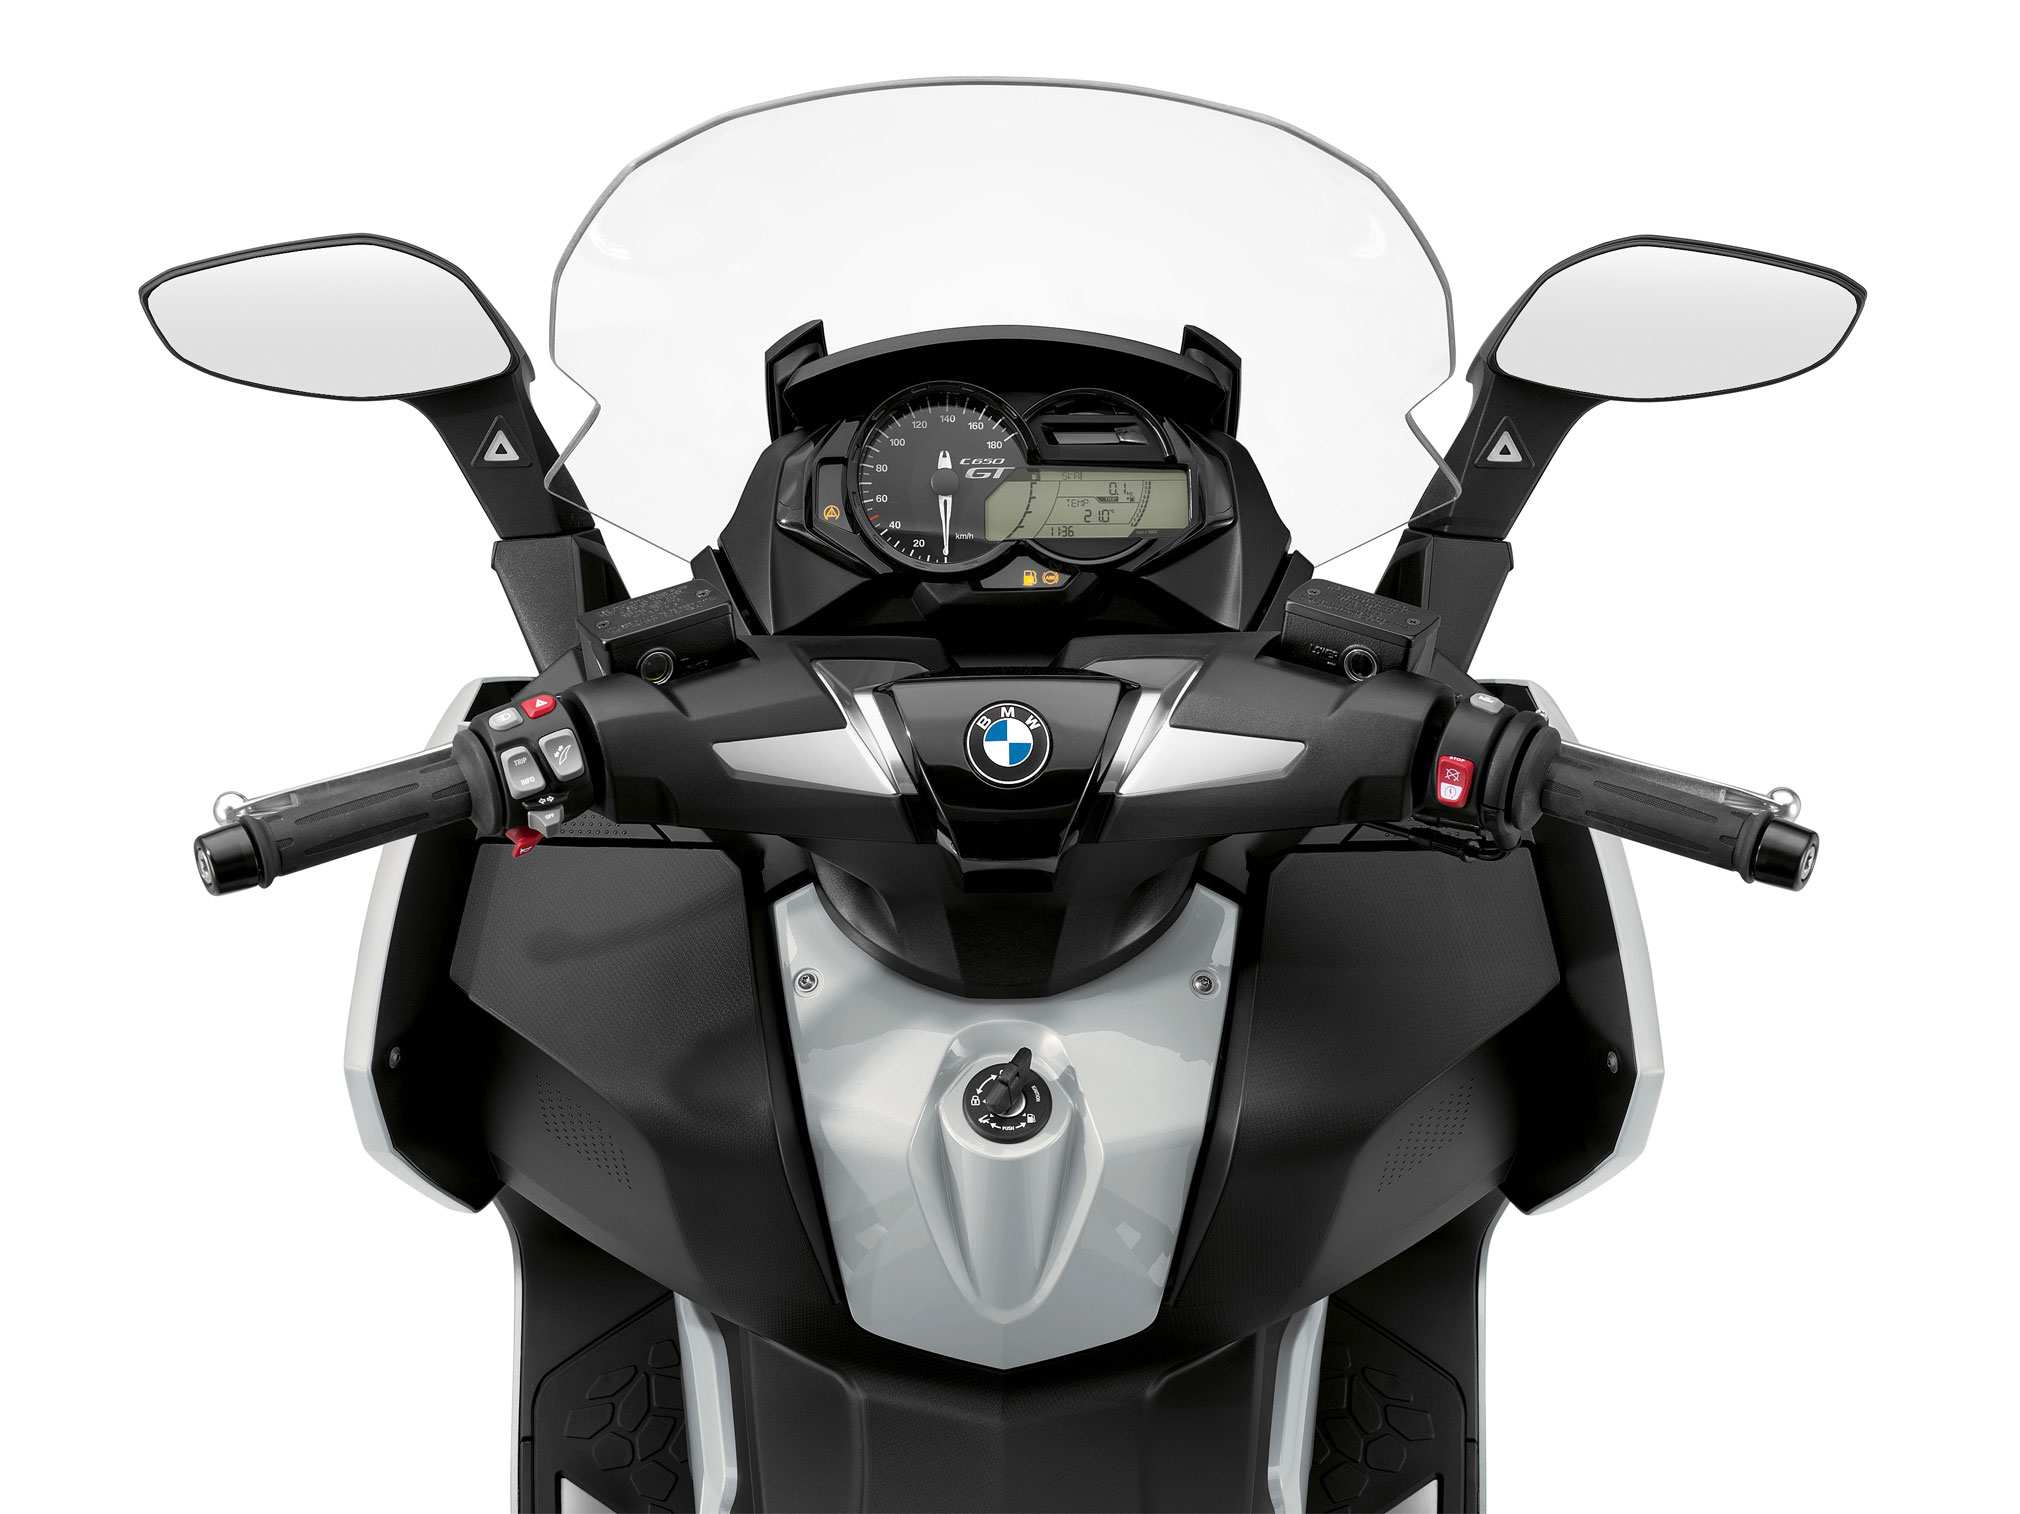 78 New Bmw C650Gt 2020 Price and Review with Bmw C650Gt 2020